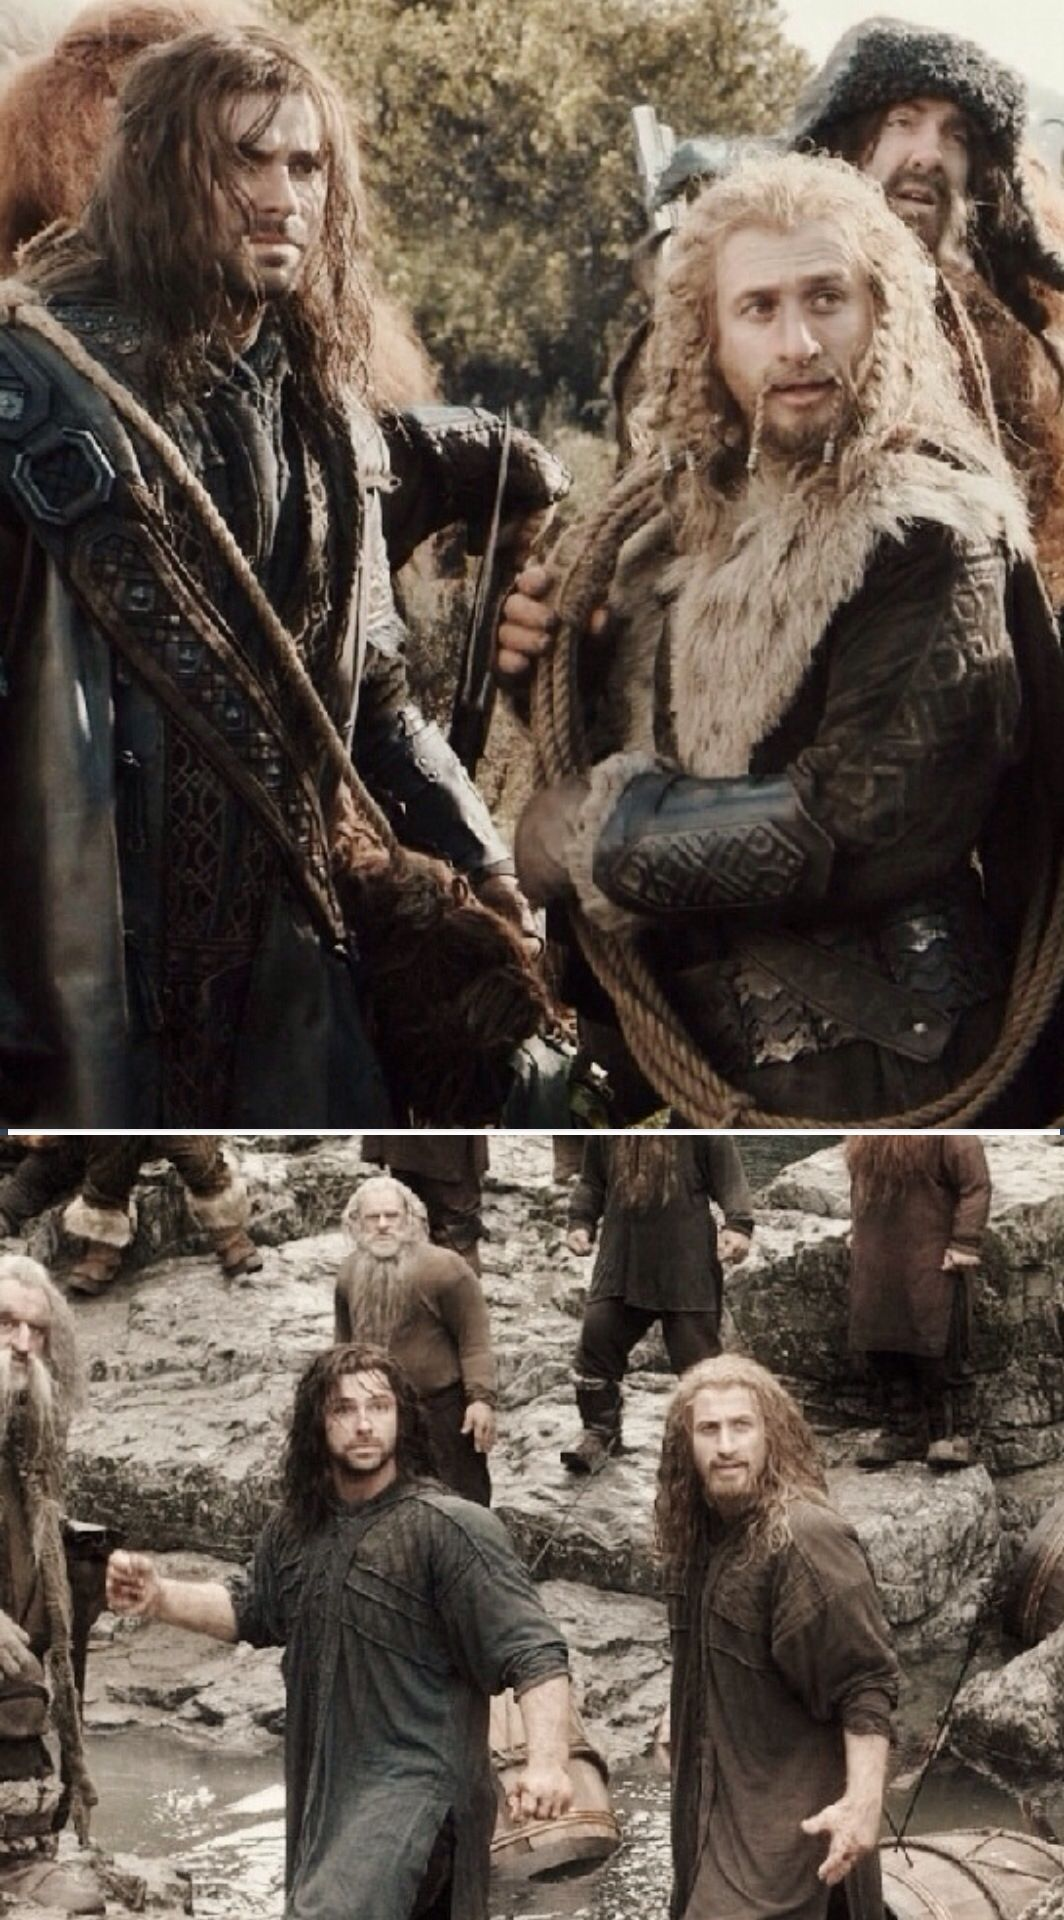 The look of complete and utter shock on kili's face when bard shoots the knife (or stick couldn't really tell)  out if his had was hilarious XD